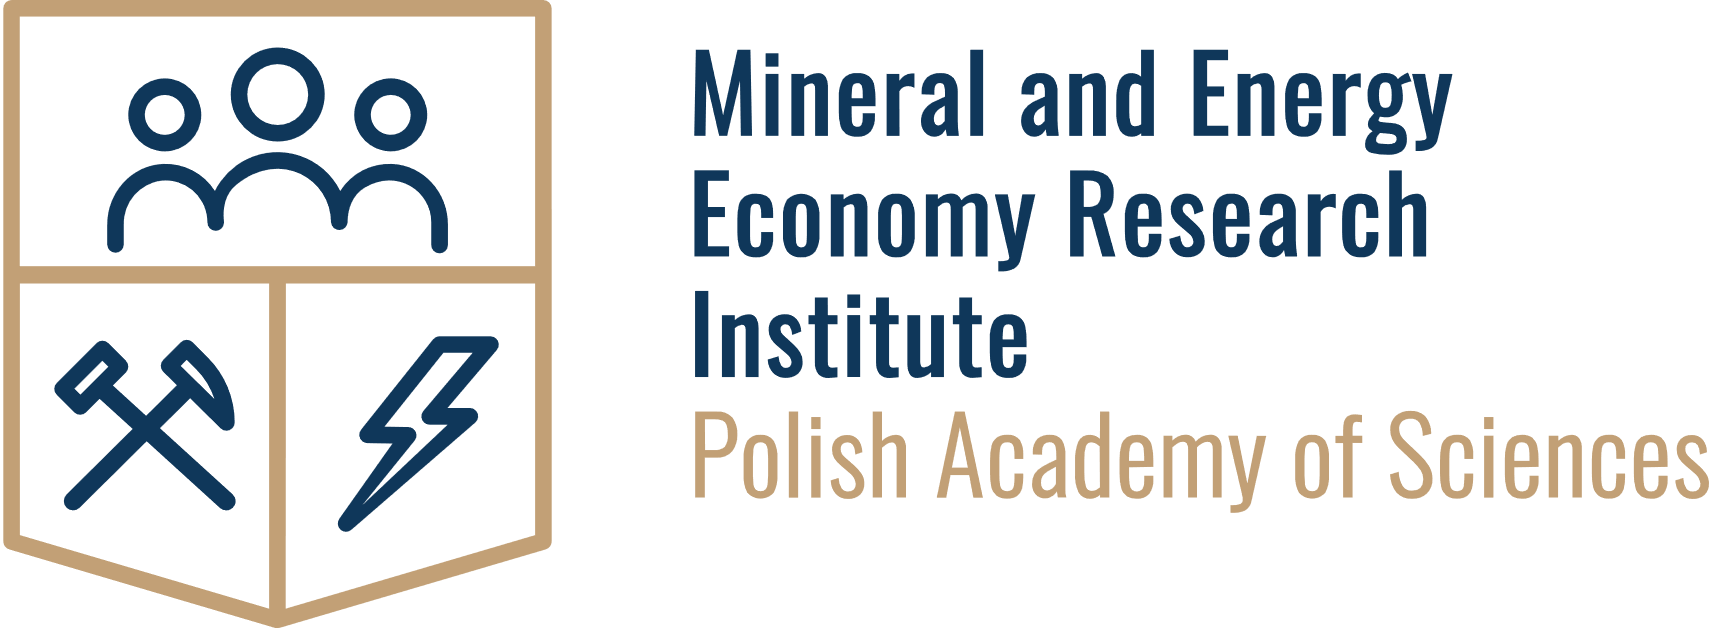 Mineral and Energy Economy Research